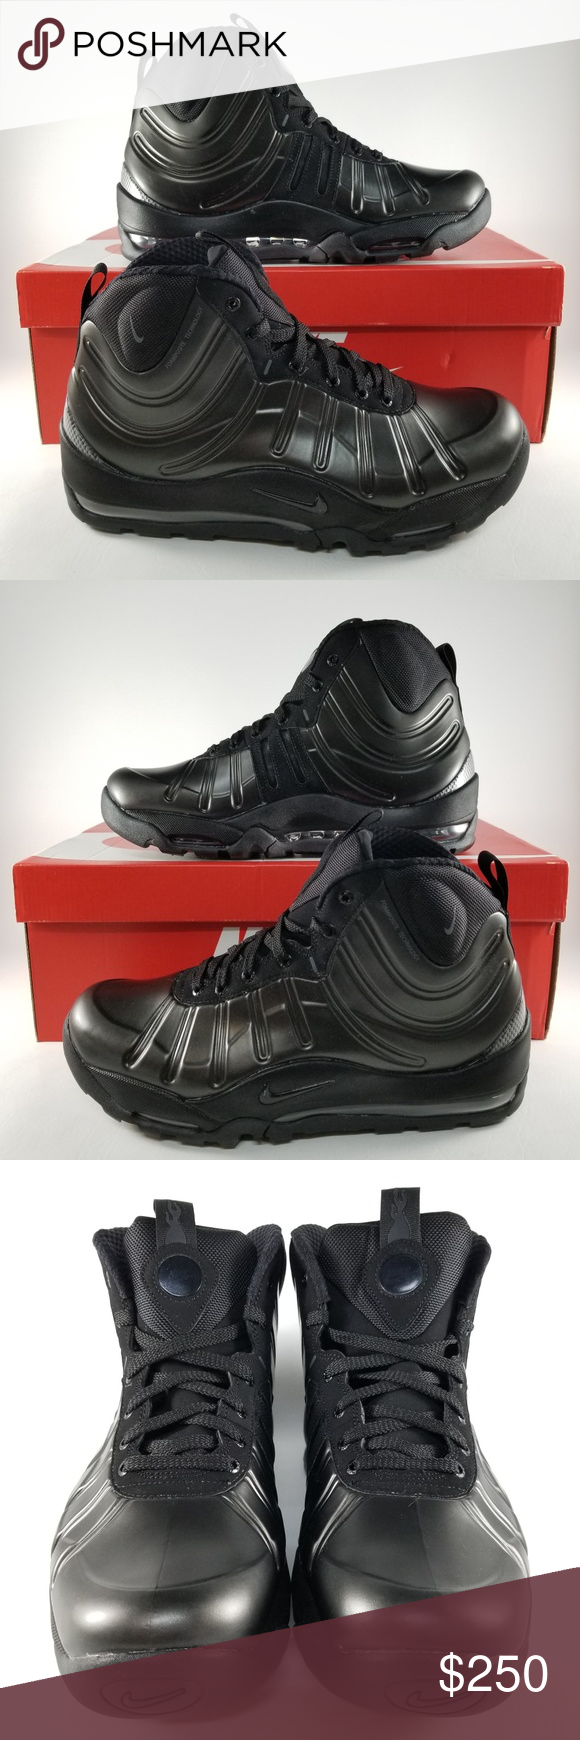 hot sale online cde16 9cef5 Nike Air Bakin  Posite Men Sneaker Boots 9.5 Black Nike Air Bakin  Posite  Men s Sneaker Boots Style  618056-001 Color  Black   Anthracite-Black-Black  Size  ...